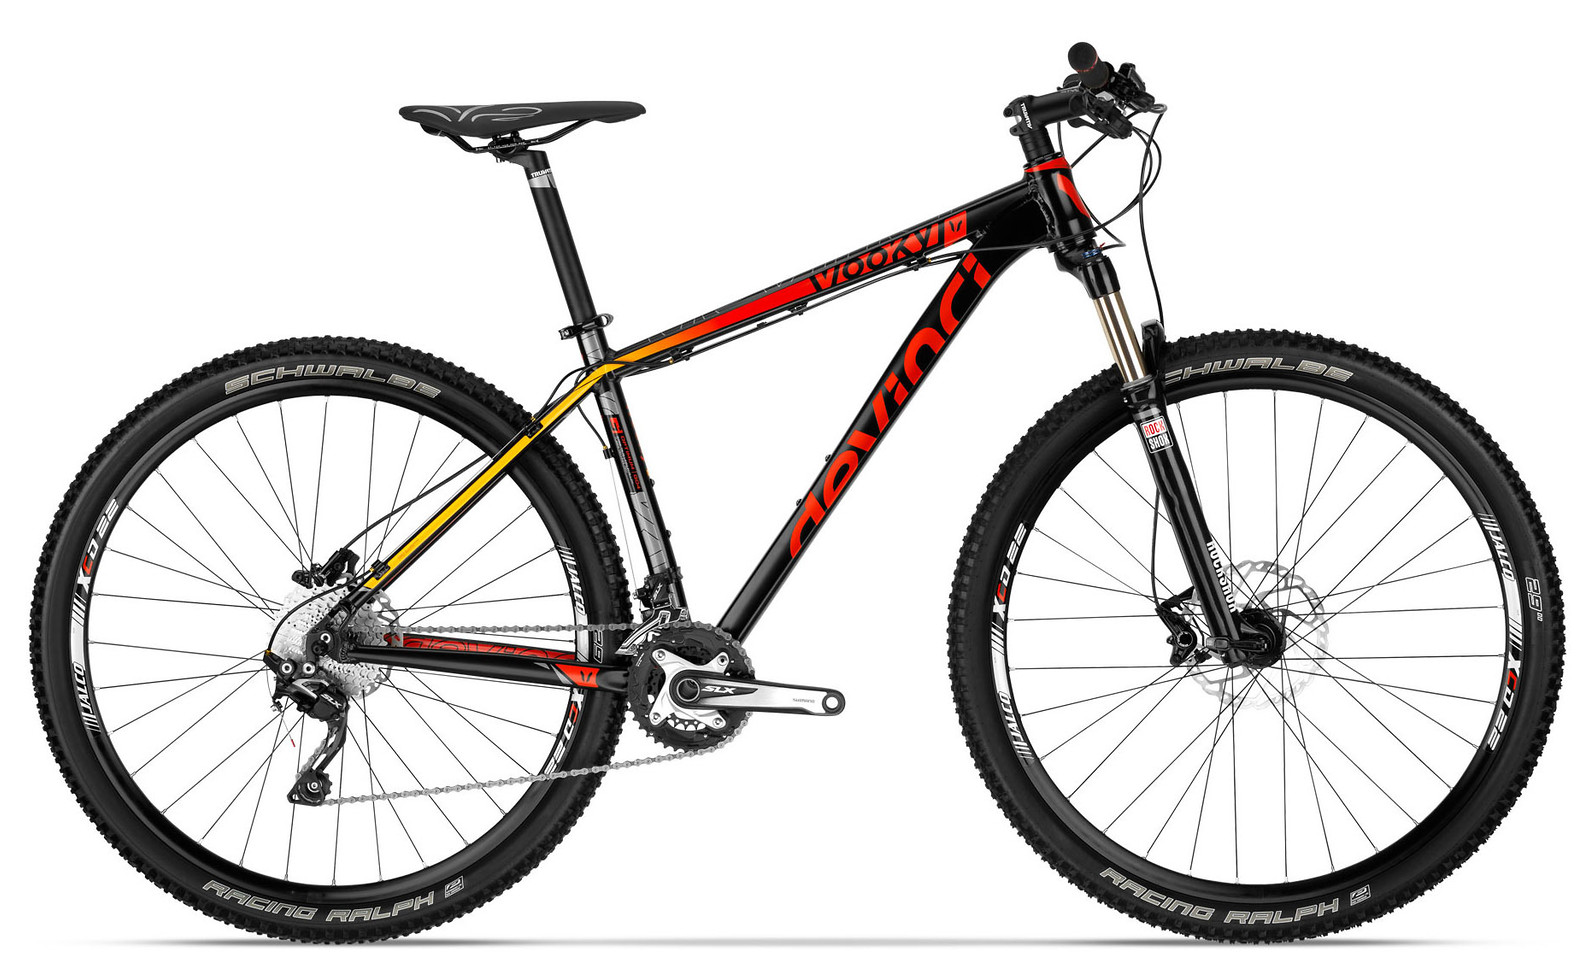 Bike - 2014 Devinci Wooky XP